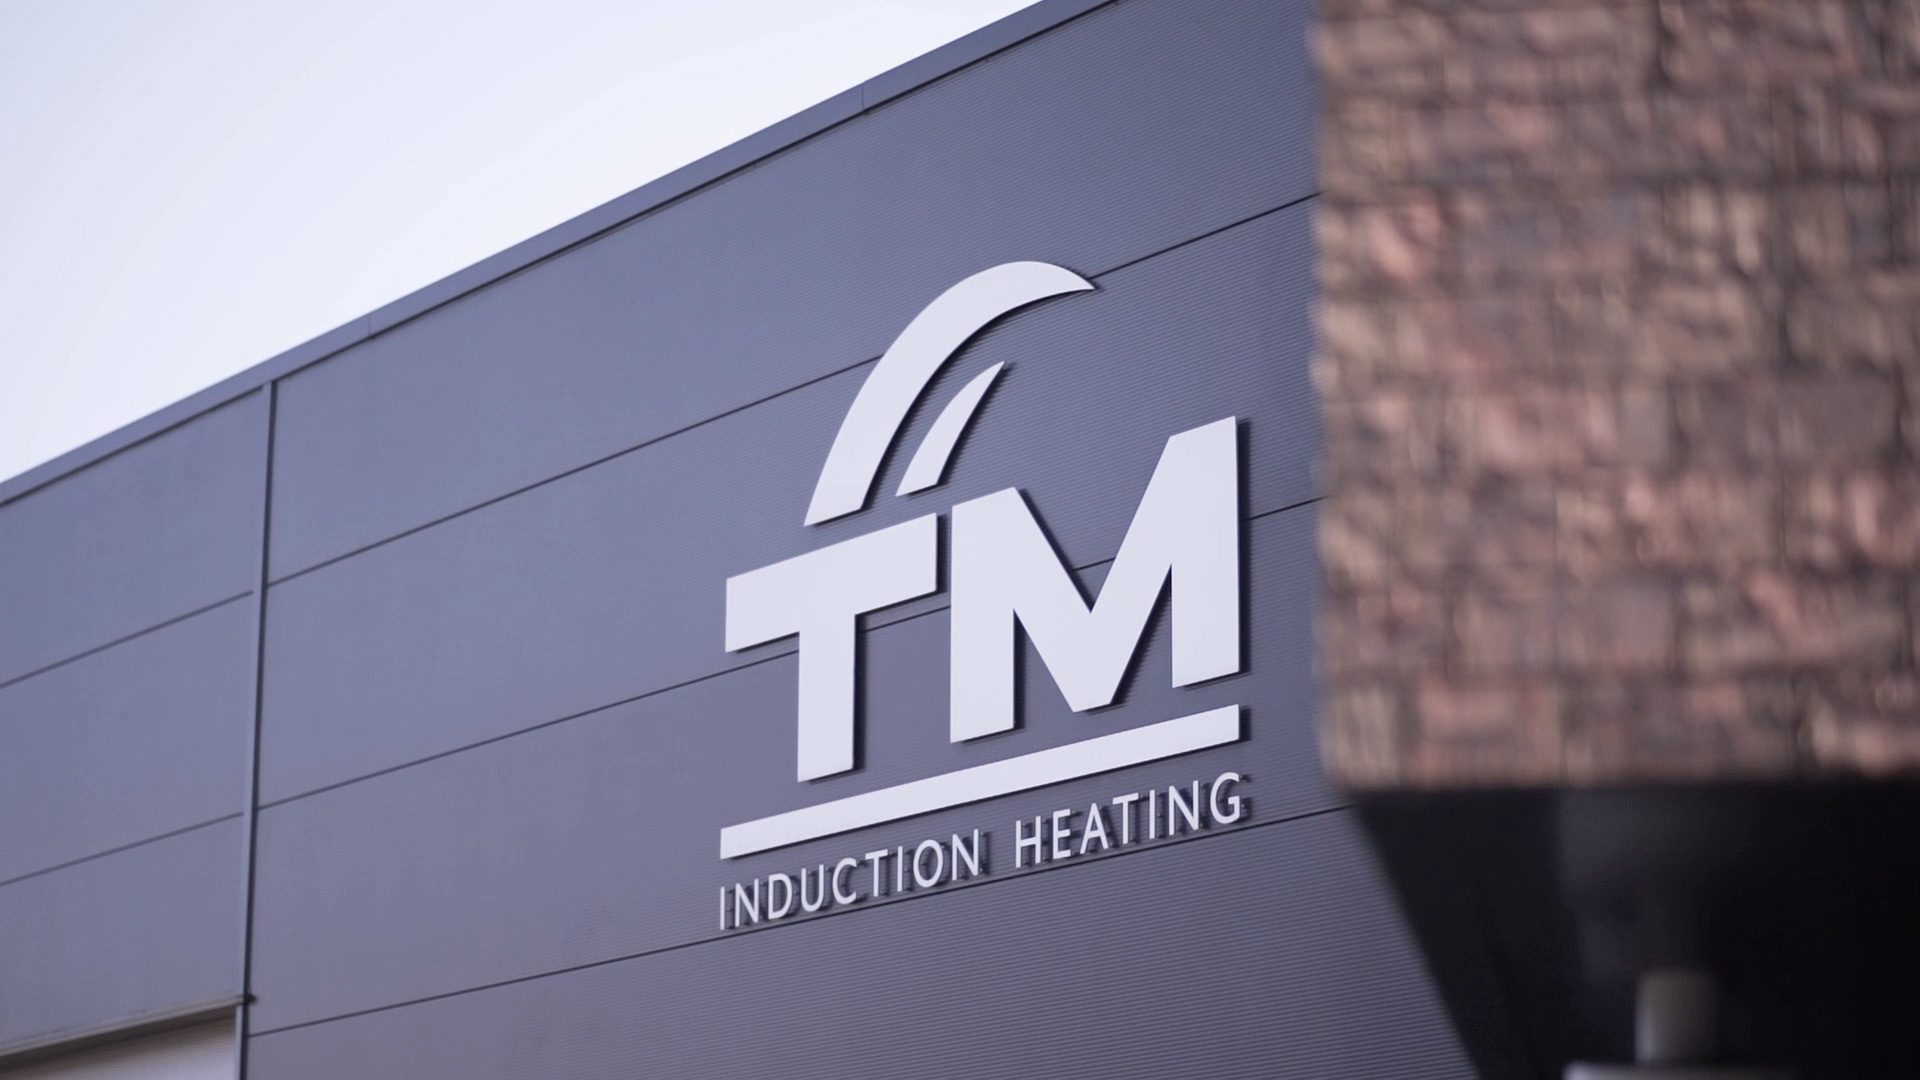 TM Induction Heating